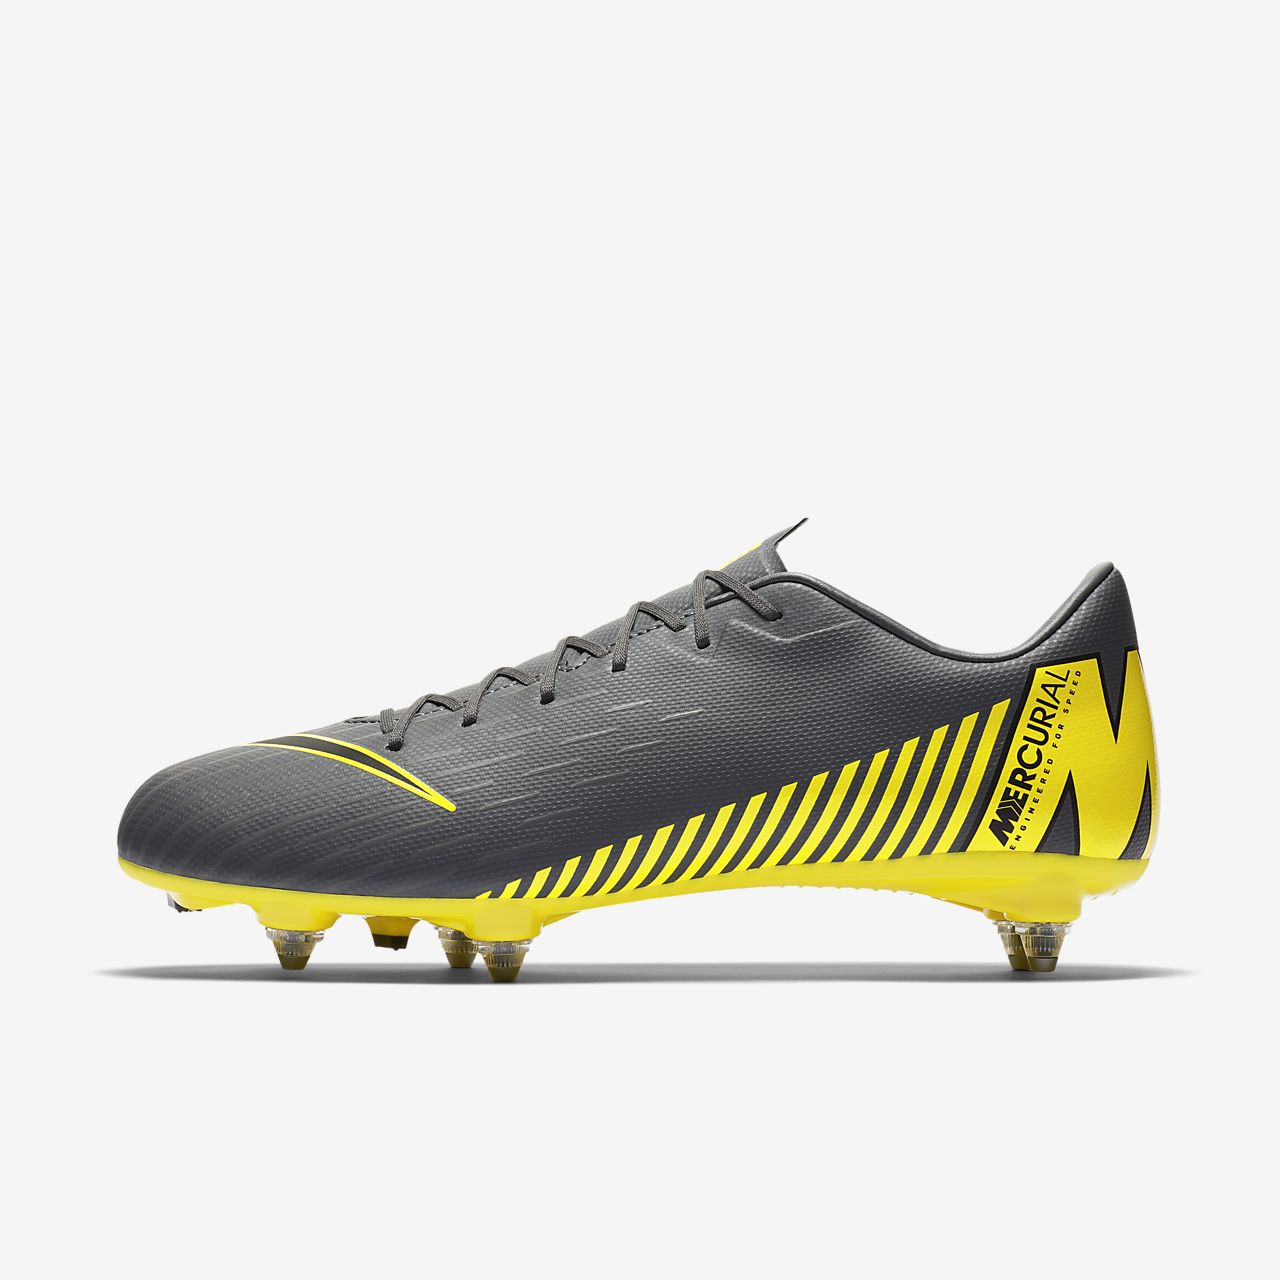 7321378548d6 Nike Mercurial Vapor XII Academy SG-PRO Soft-Ground Football Boot ...